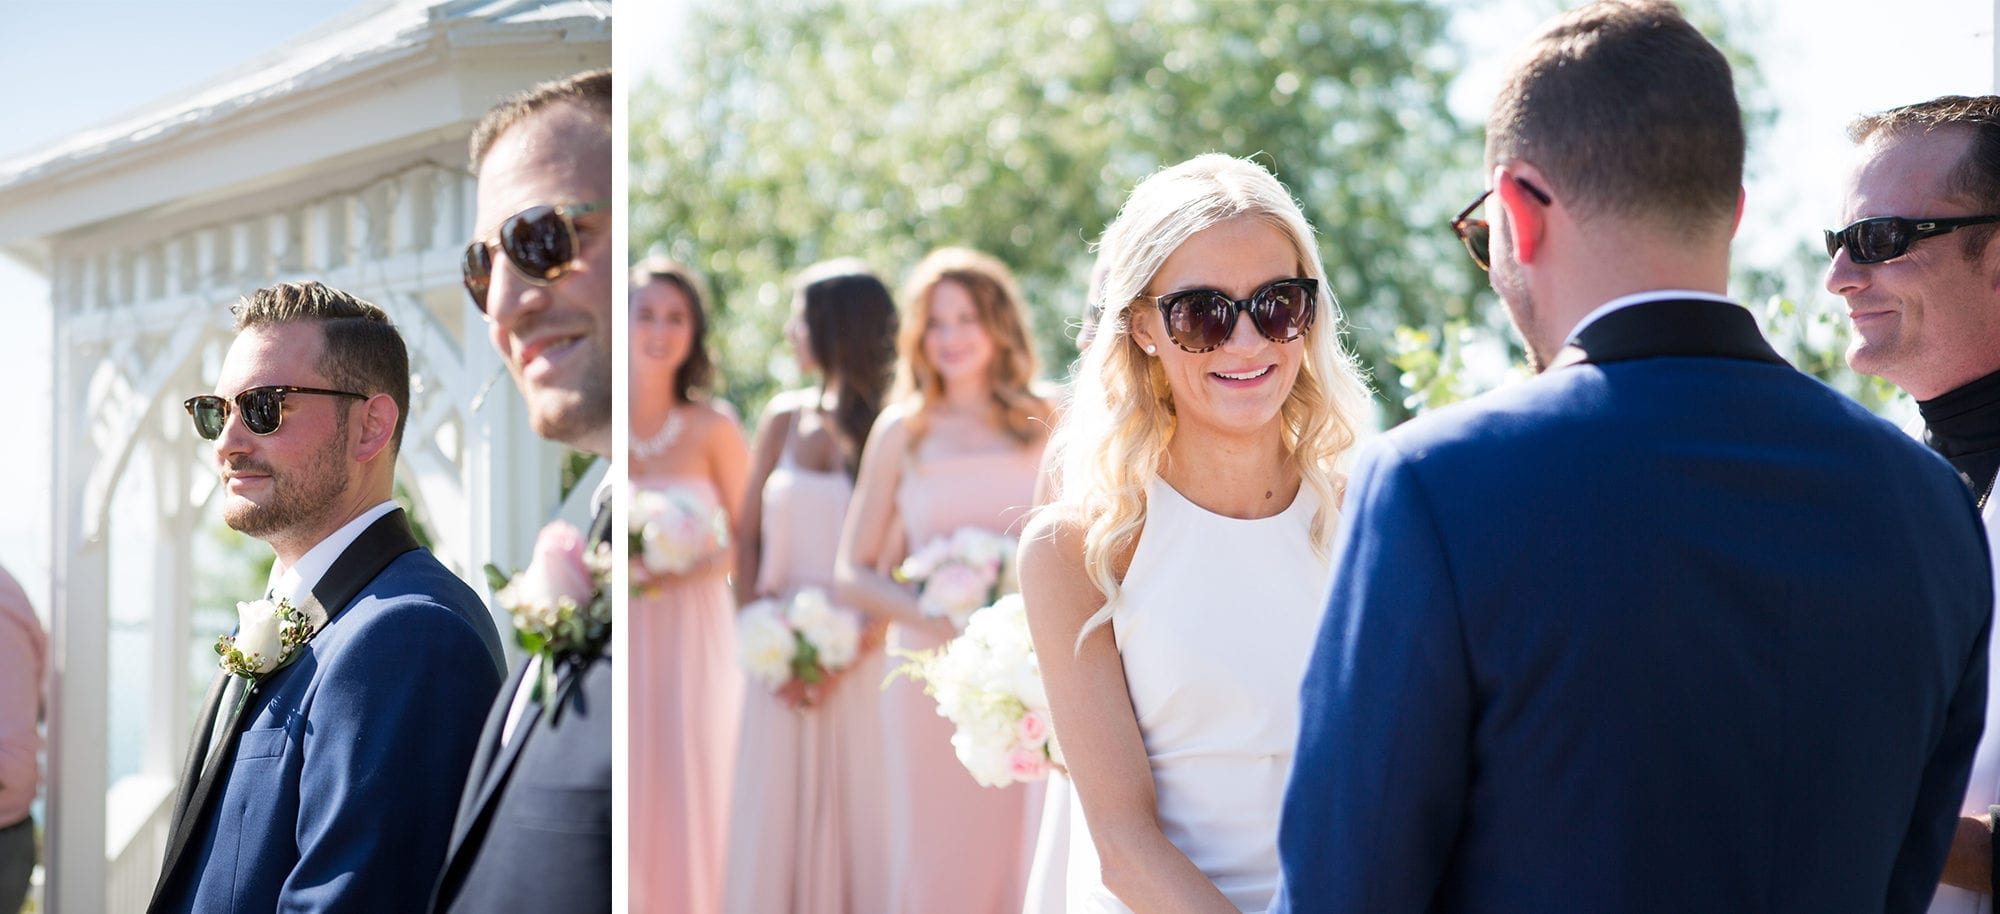 Bride Groom Ceremony Legends Winery Wedding Zsuzsi Pal Photography